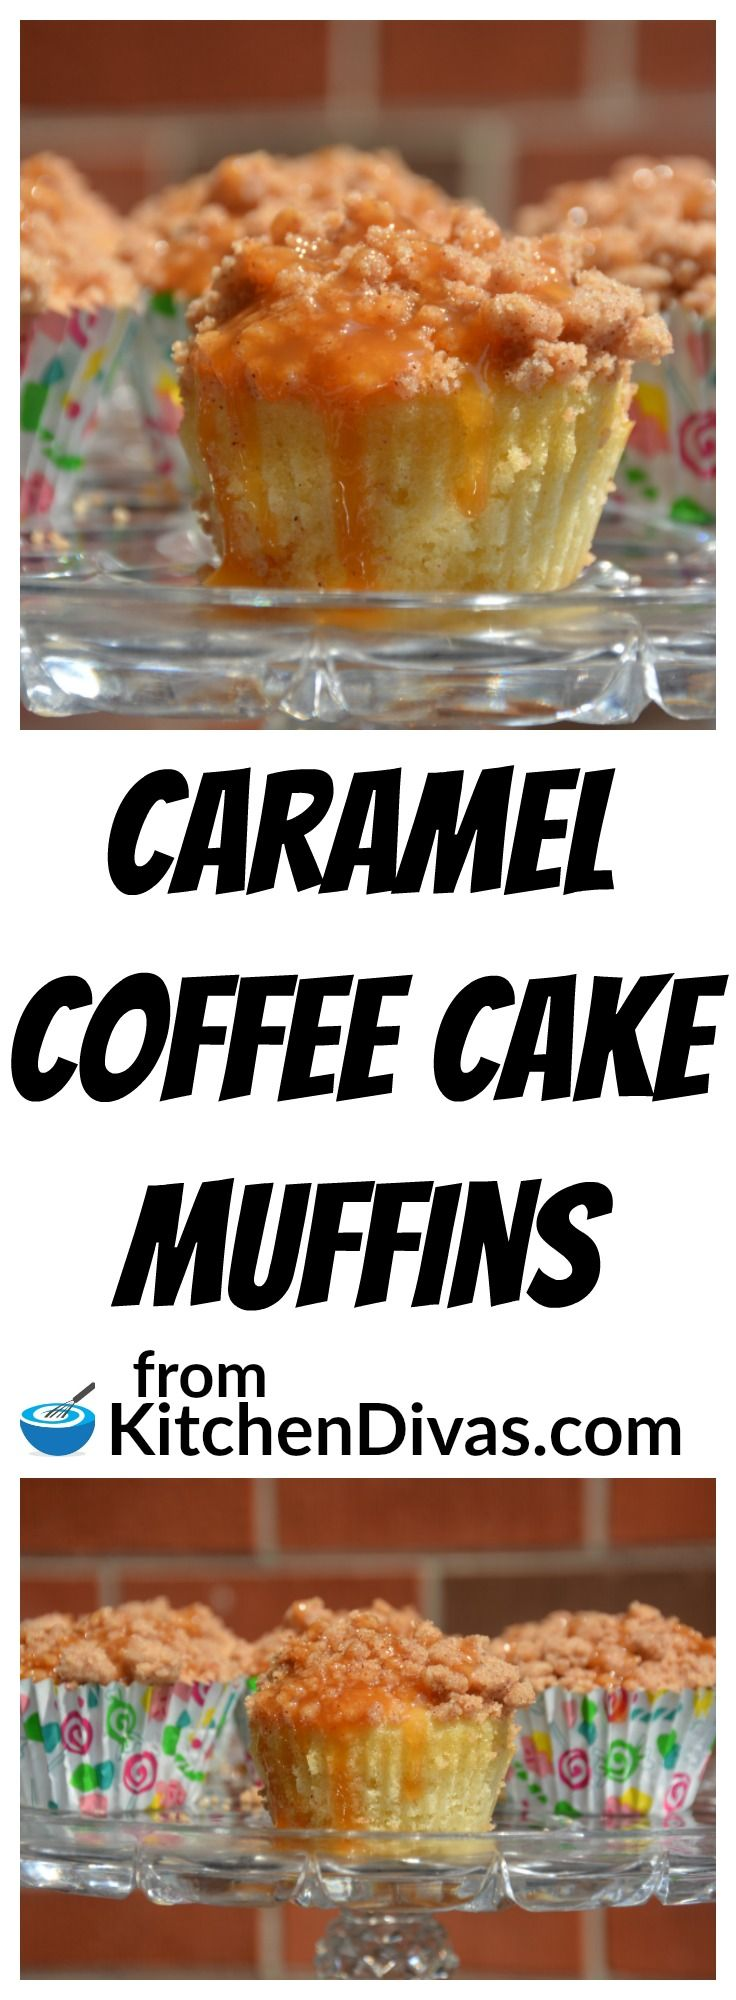 These muffins are amazing!  They disappear so quickly we always have trouble getting a photo!  The streusel topping and the caramel go perfectly together.  This recipe for Caramel Coffee Cake Muffins satisfies every time!